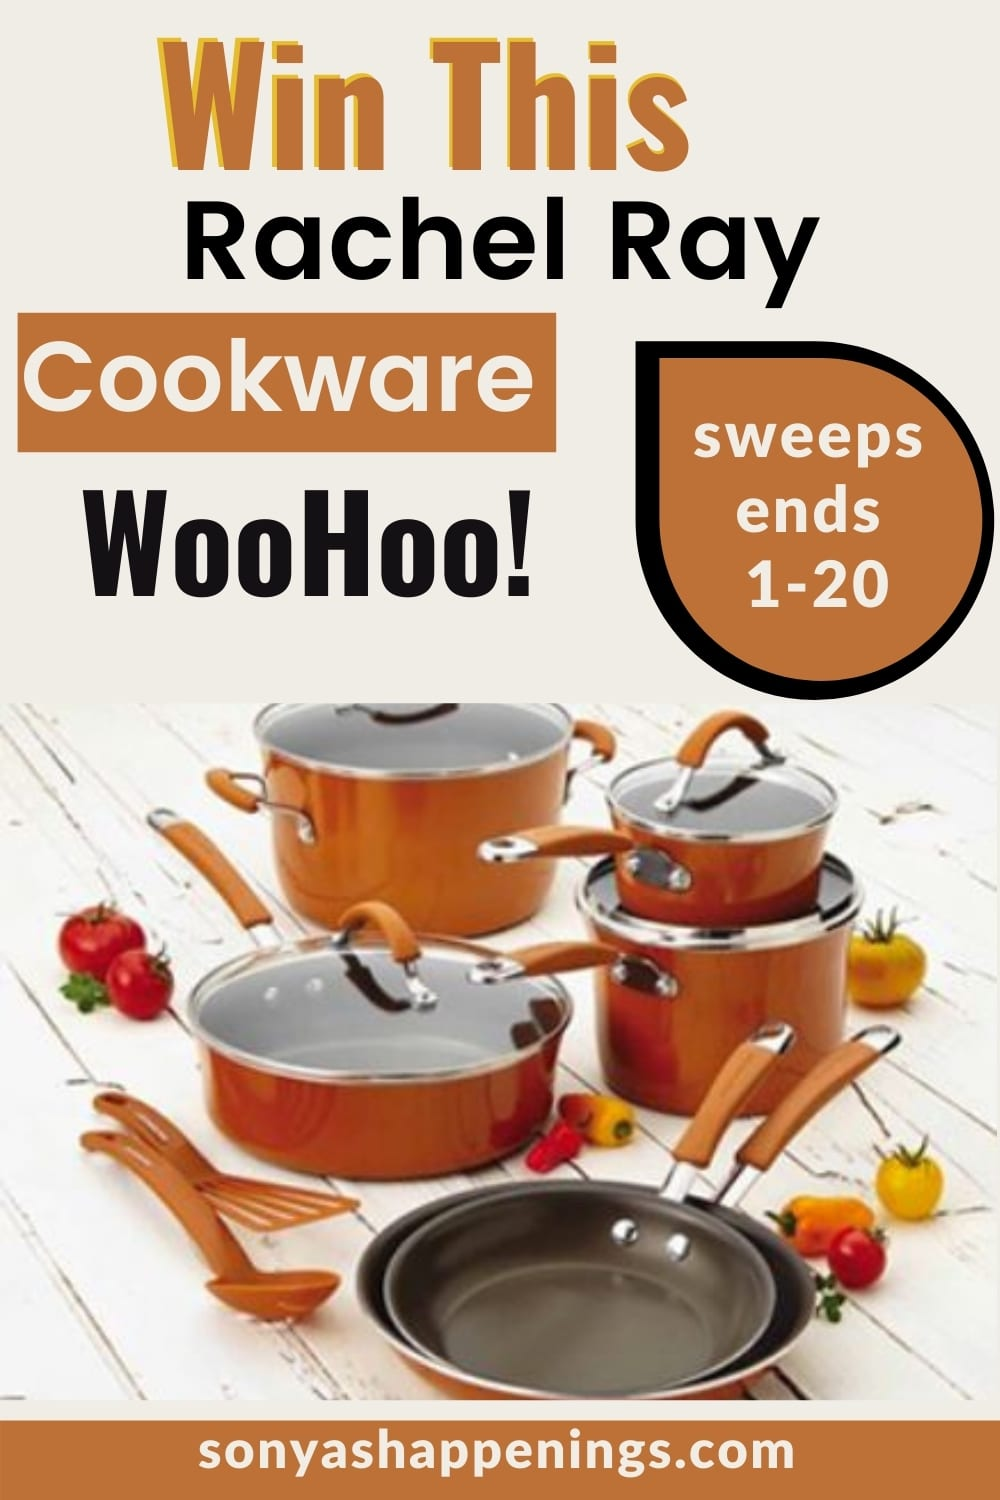 Win Rachael Ray Cookware ~ Sweeps Ends 1-20-21